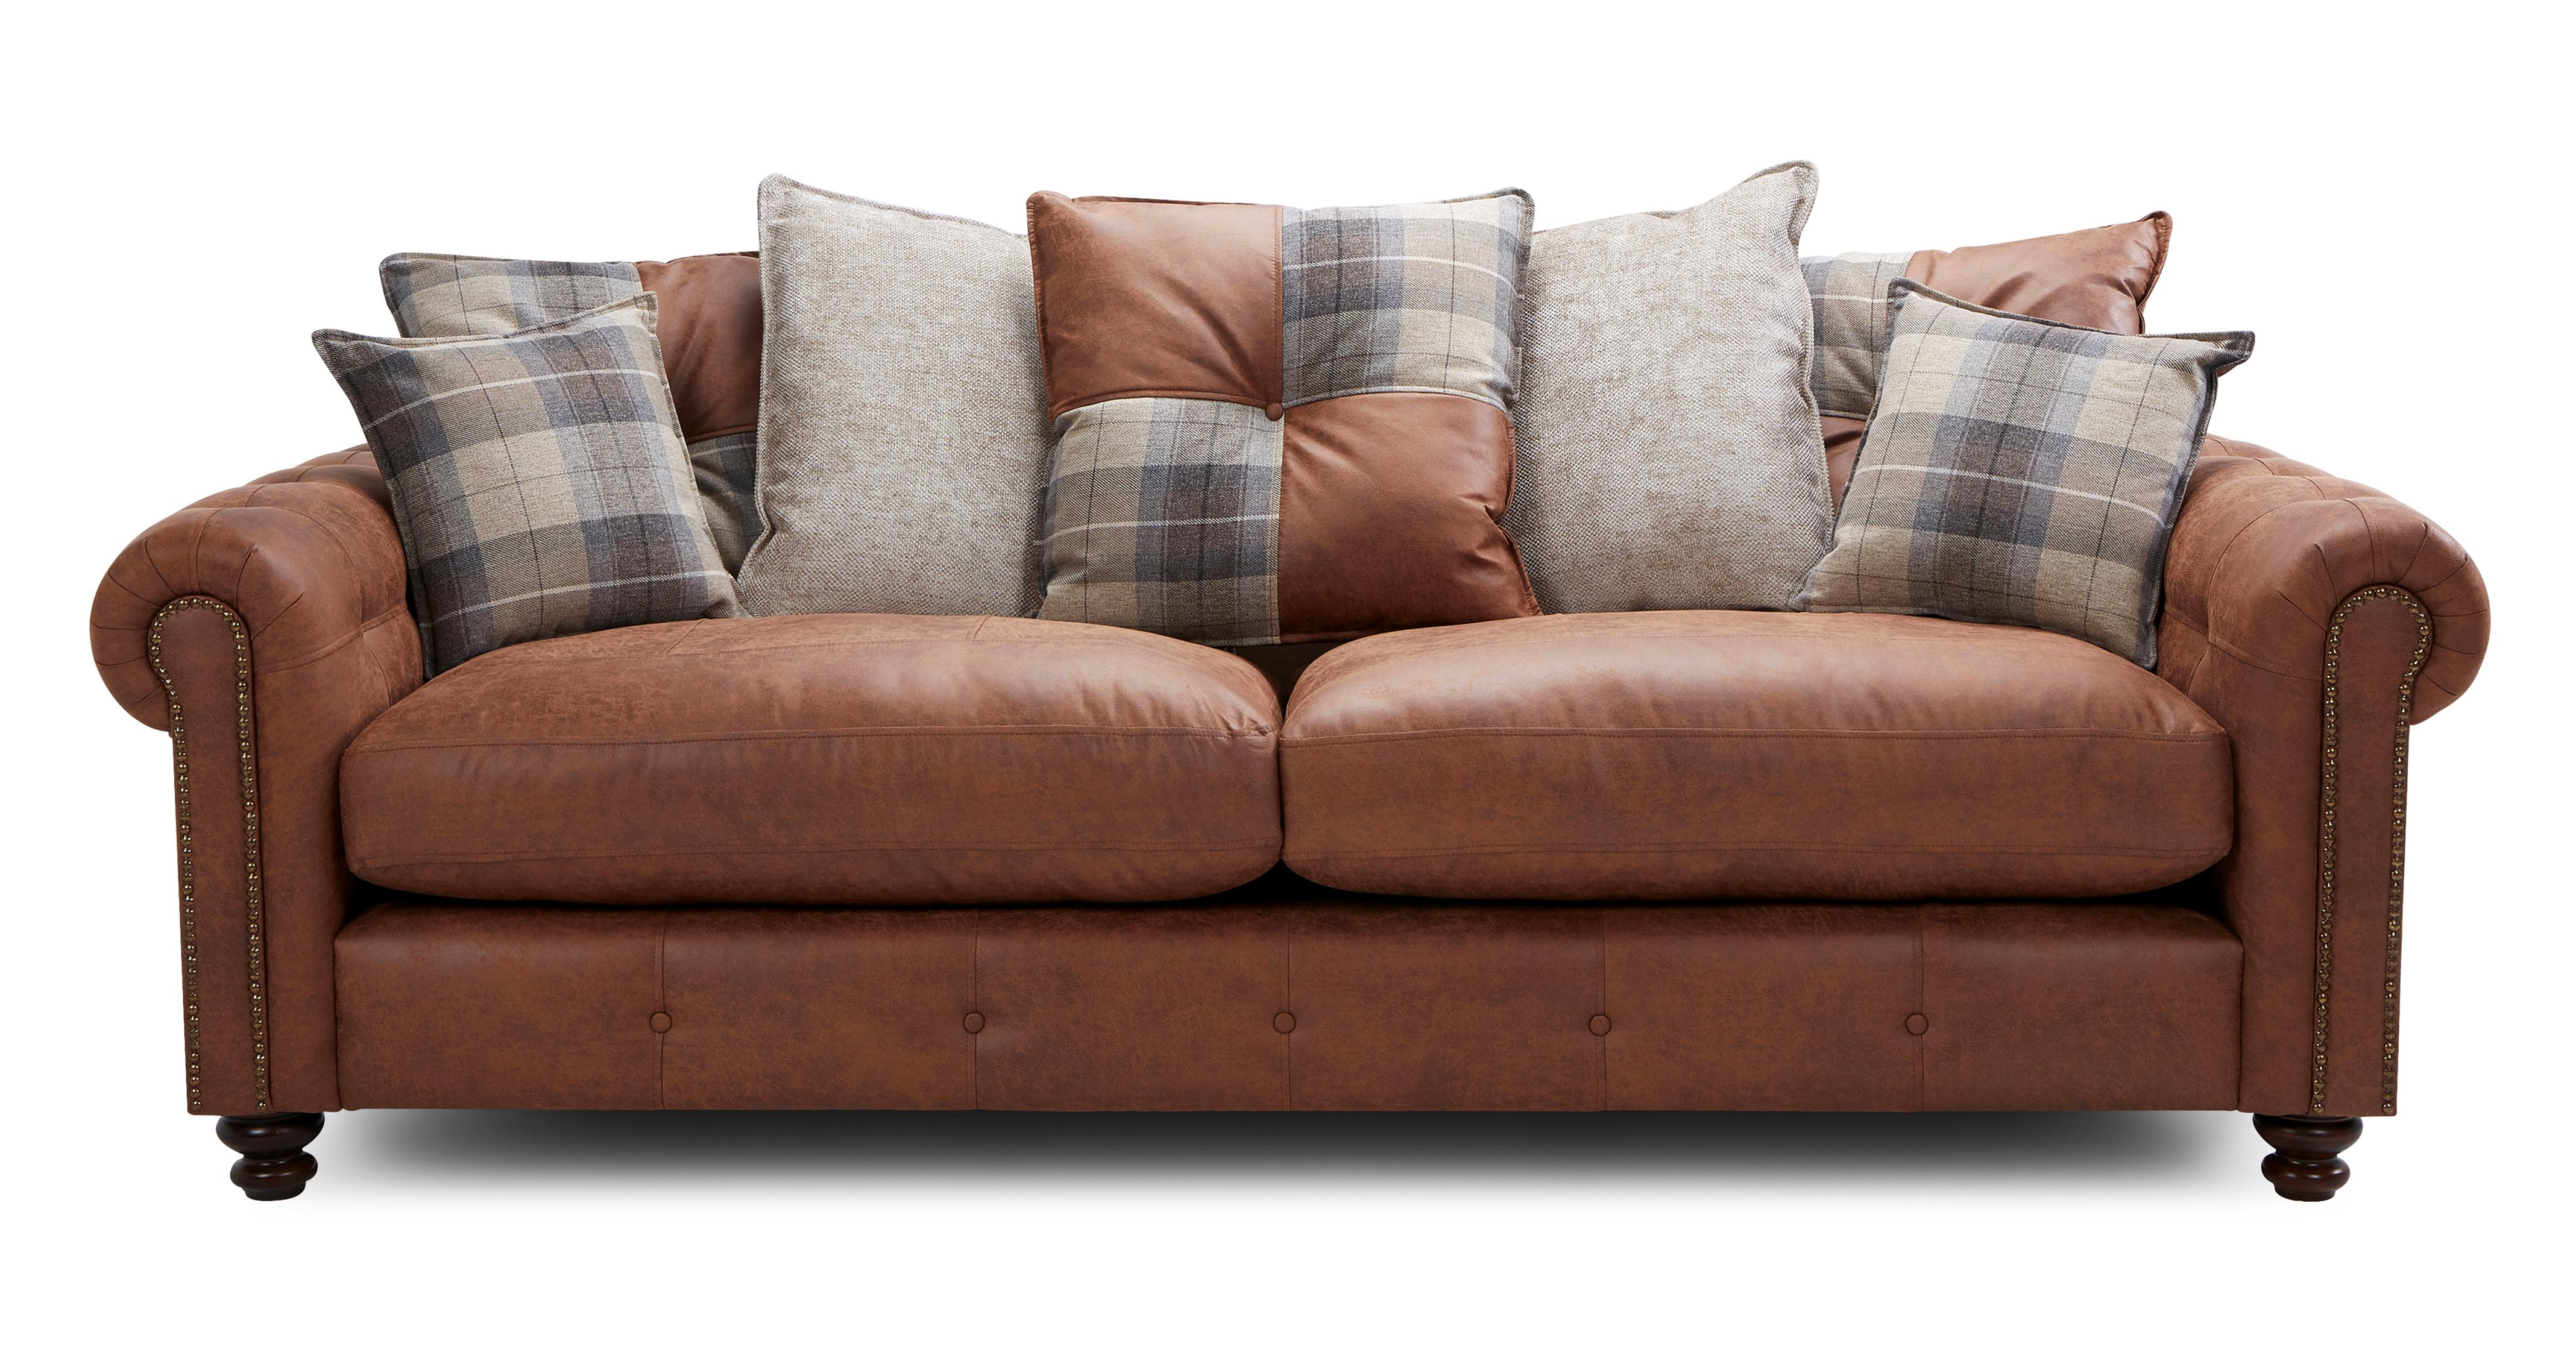 About the Alderley: Pillow Back 4 Seater Sofa